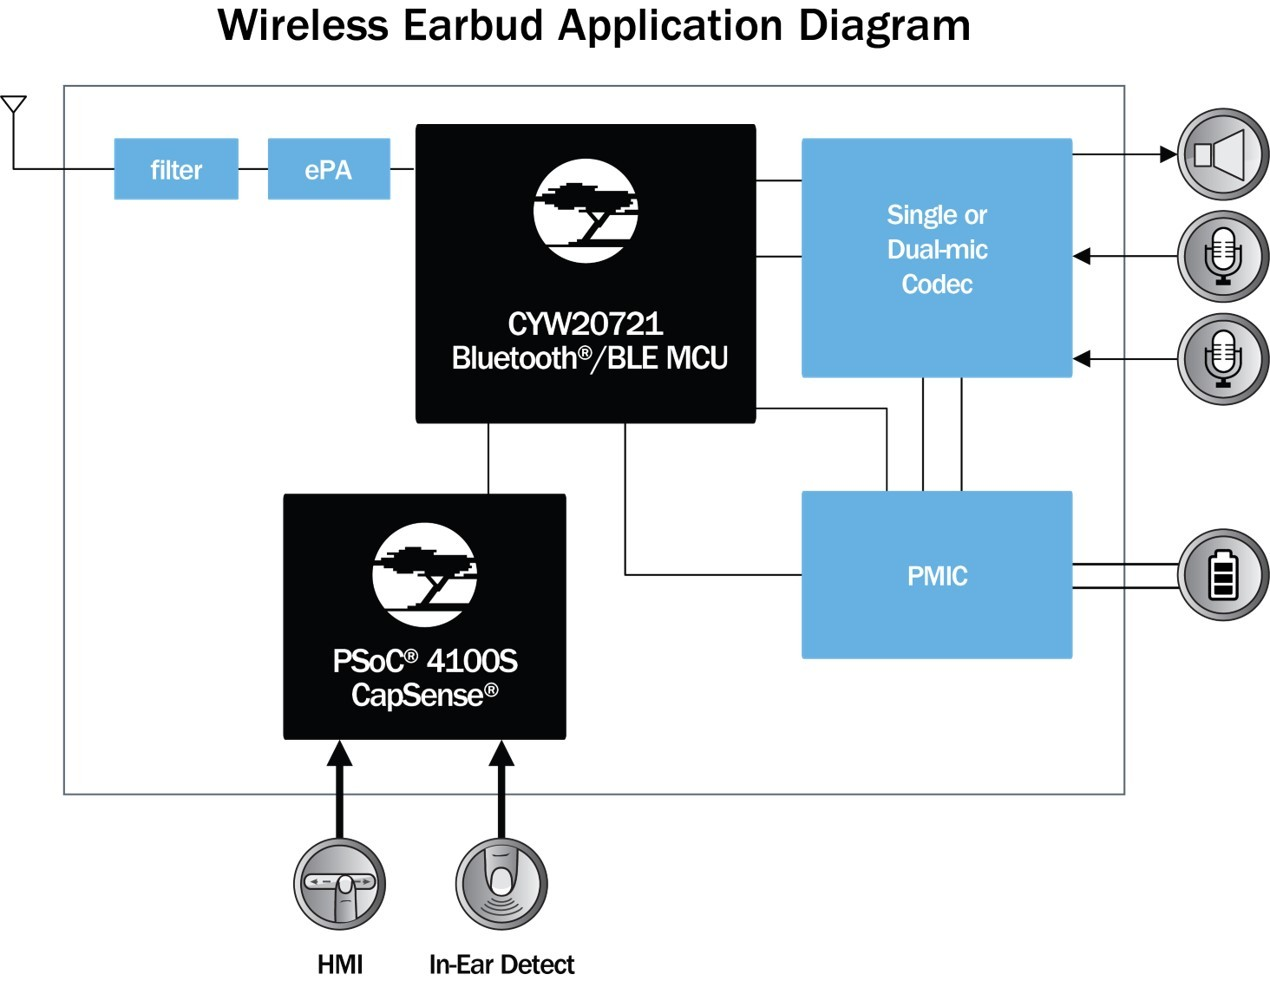 Cypress Bluetooth Audio Solution Delivers Best In Class User Hmi Wiring Diagram Pictured Is A Wireless Earbud Application Using Wass